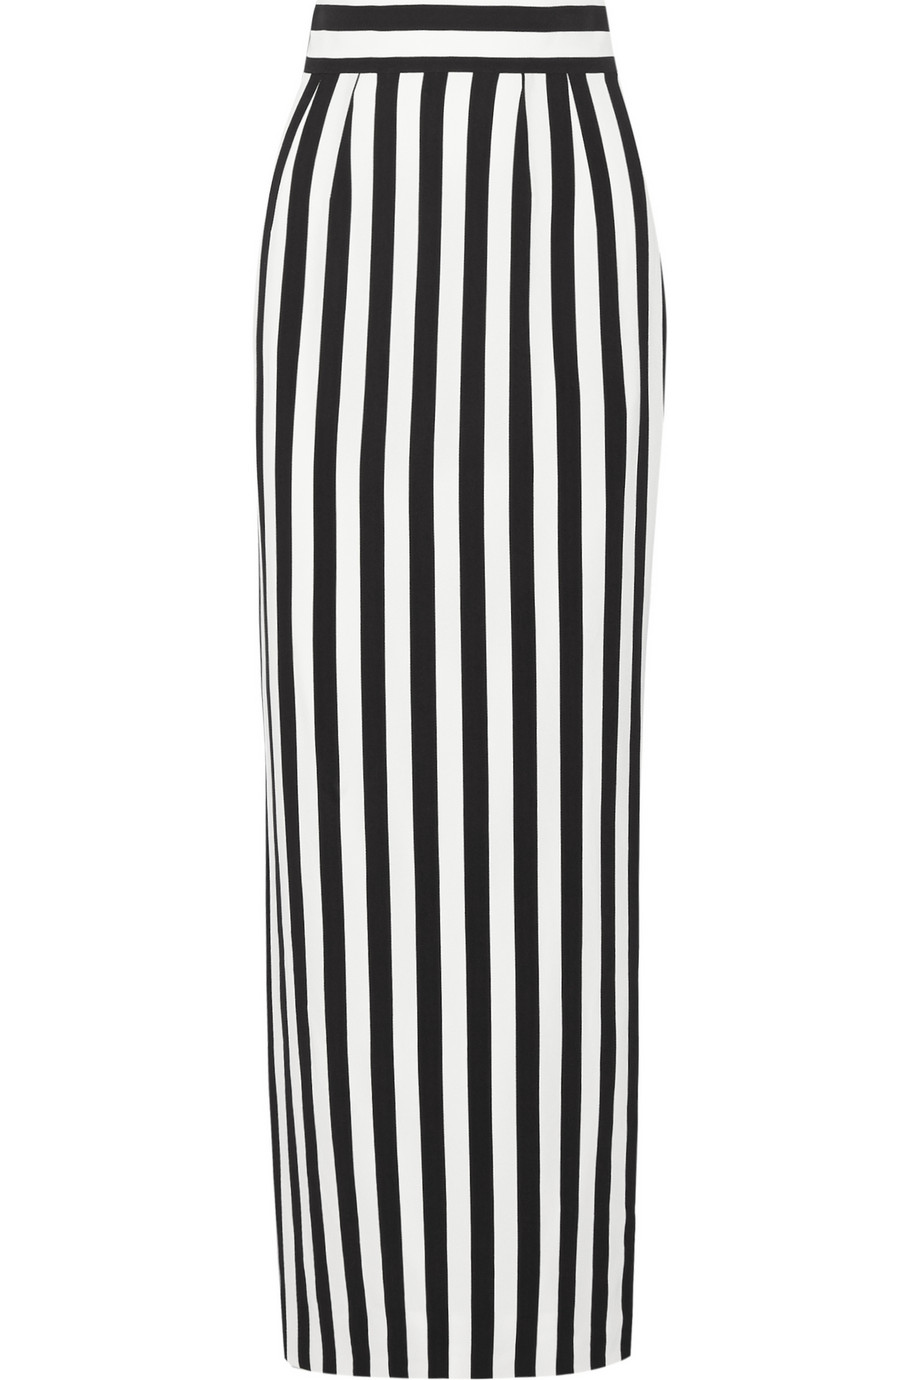 ef65bc0096 Couture Carrie: Chic Stripes